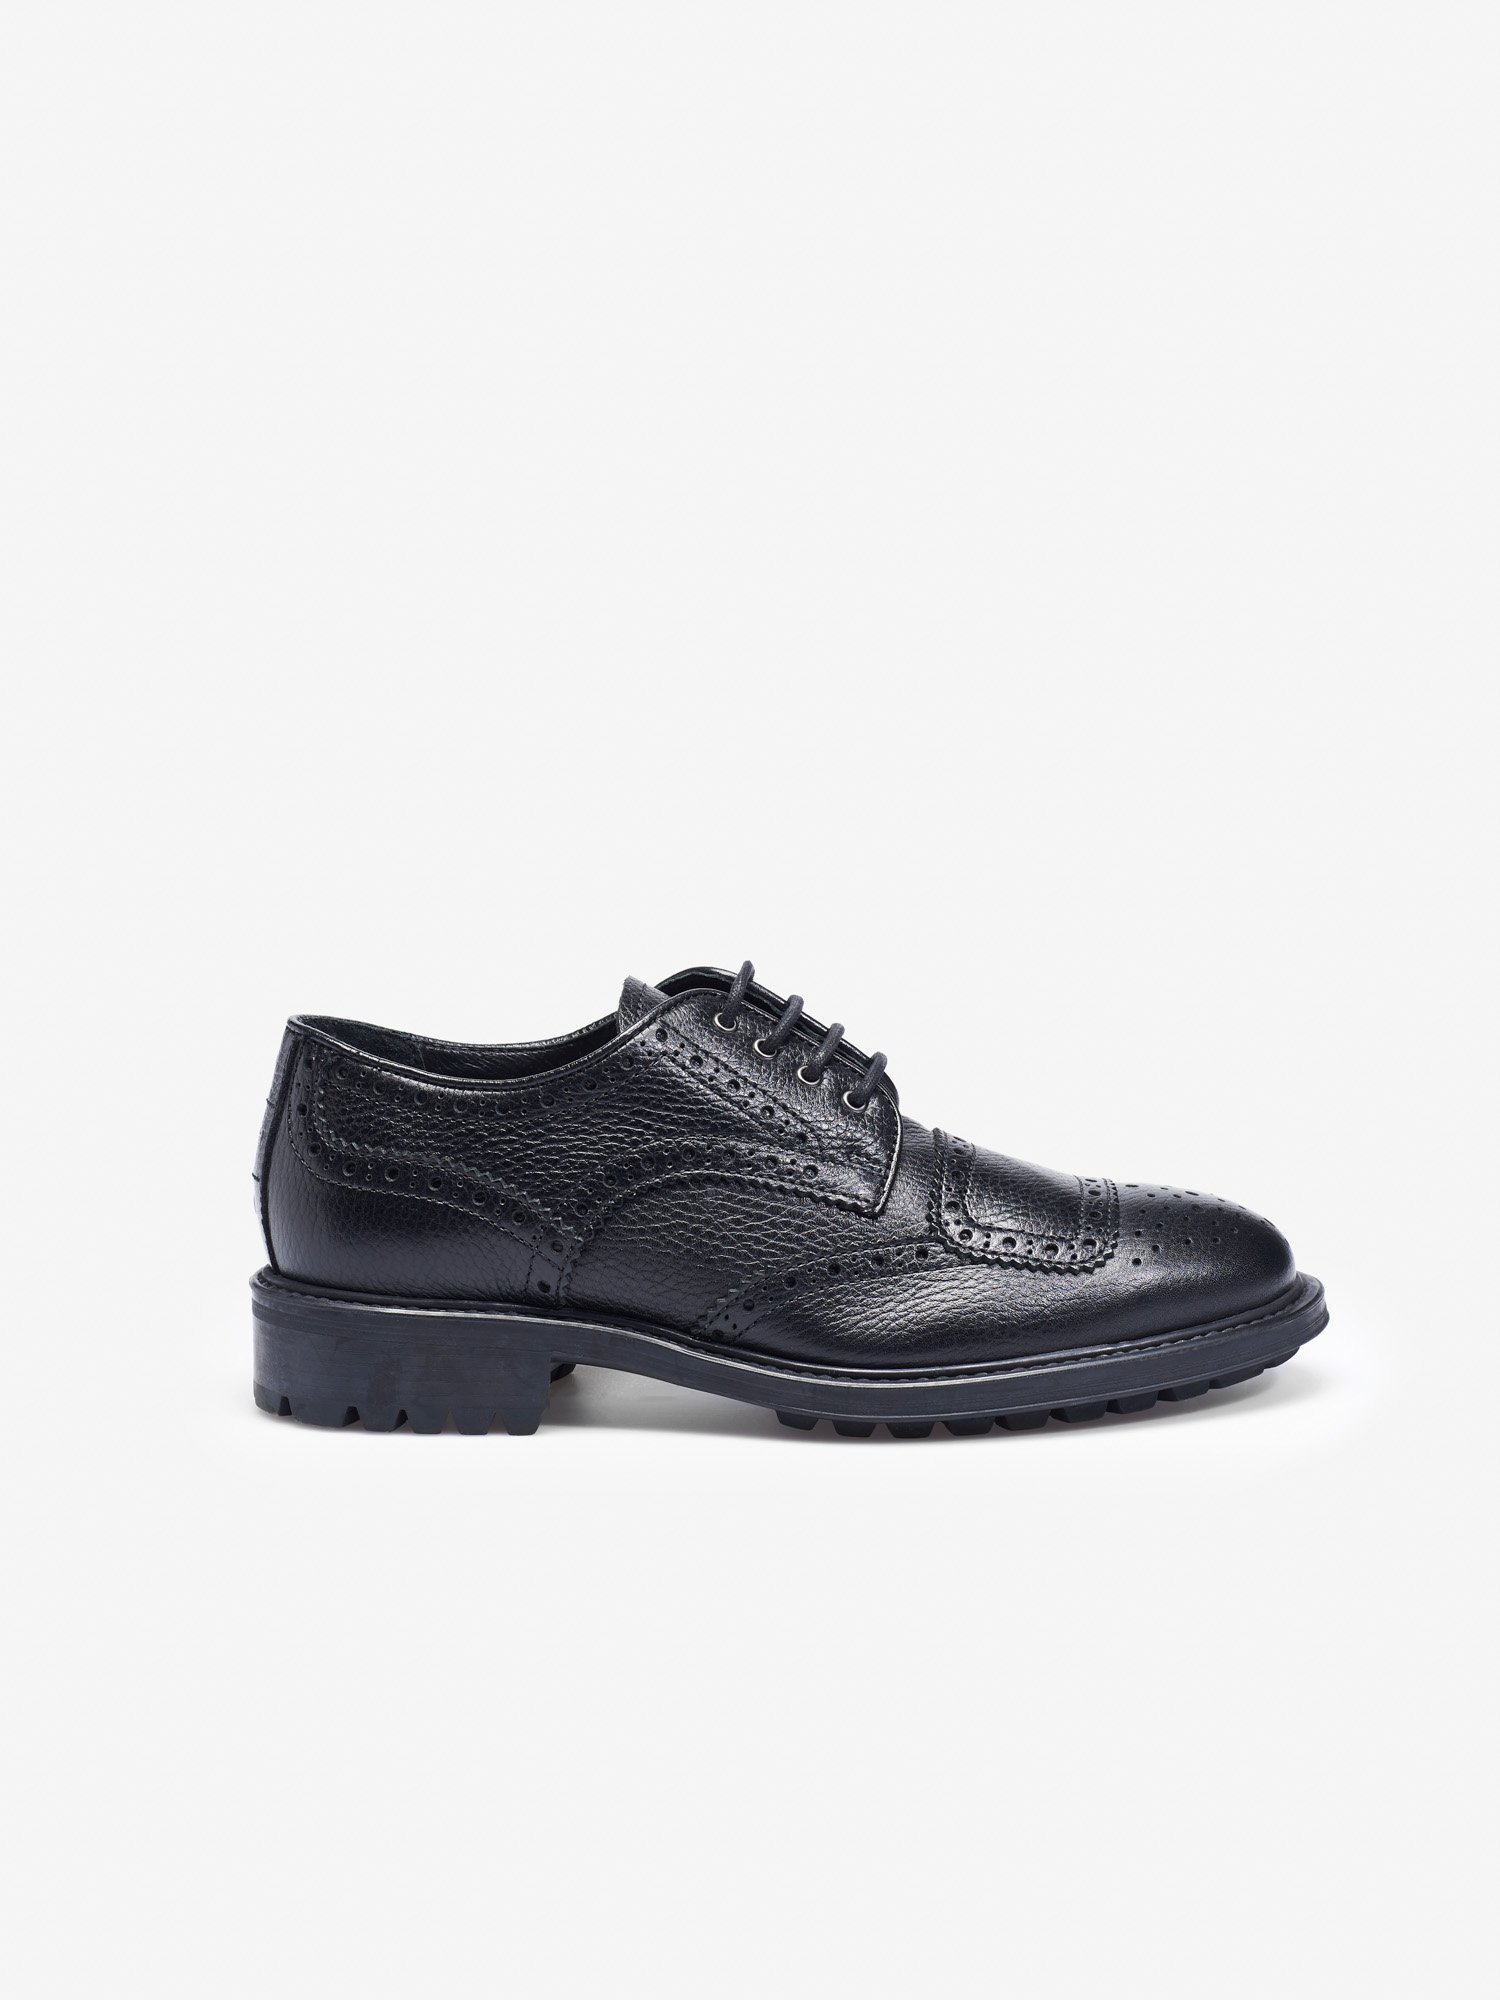 BROGUE SHOES IN BLACK LEATHER - Blauer